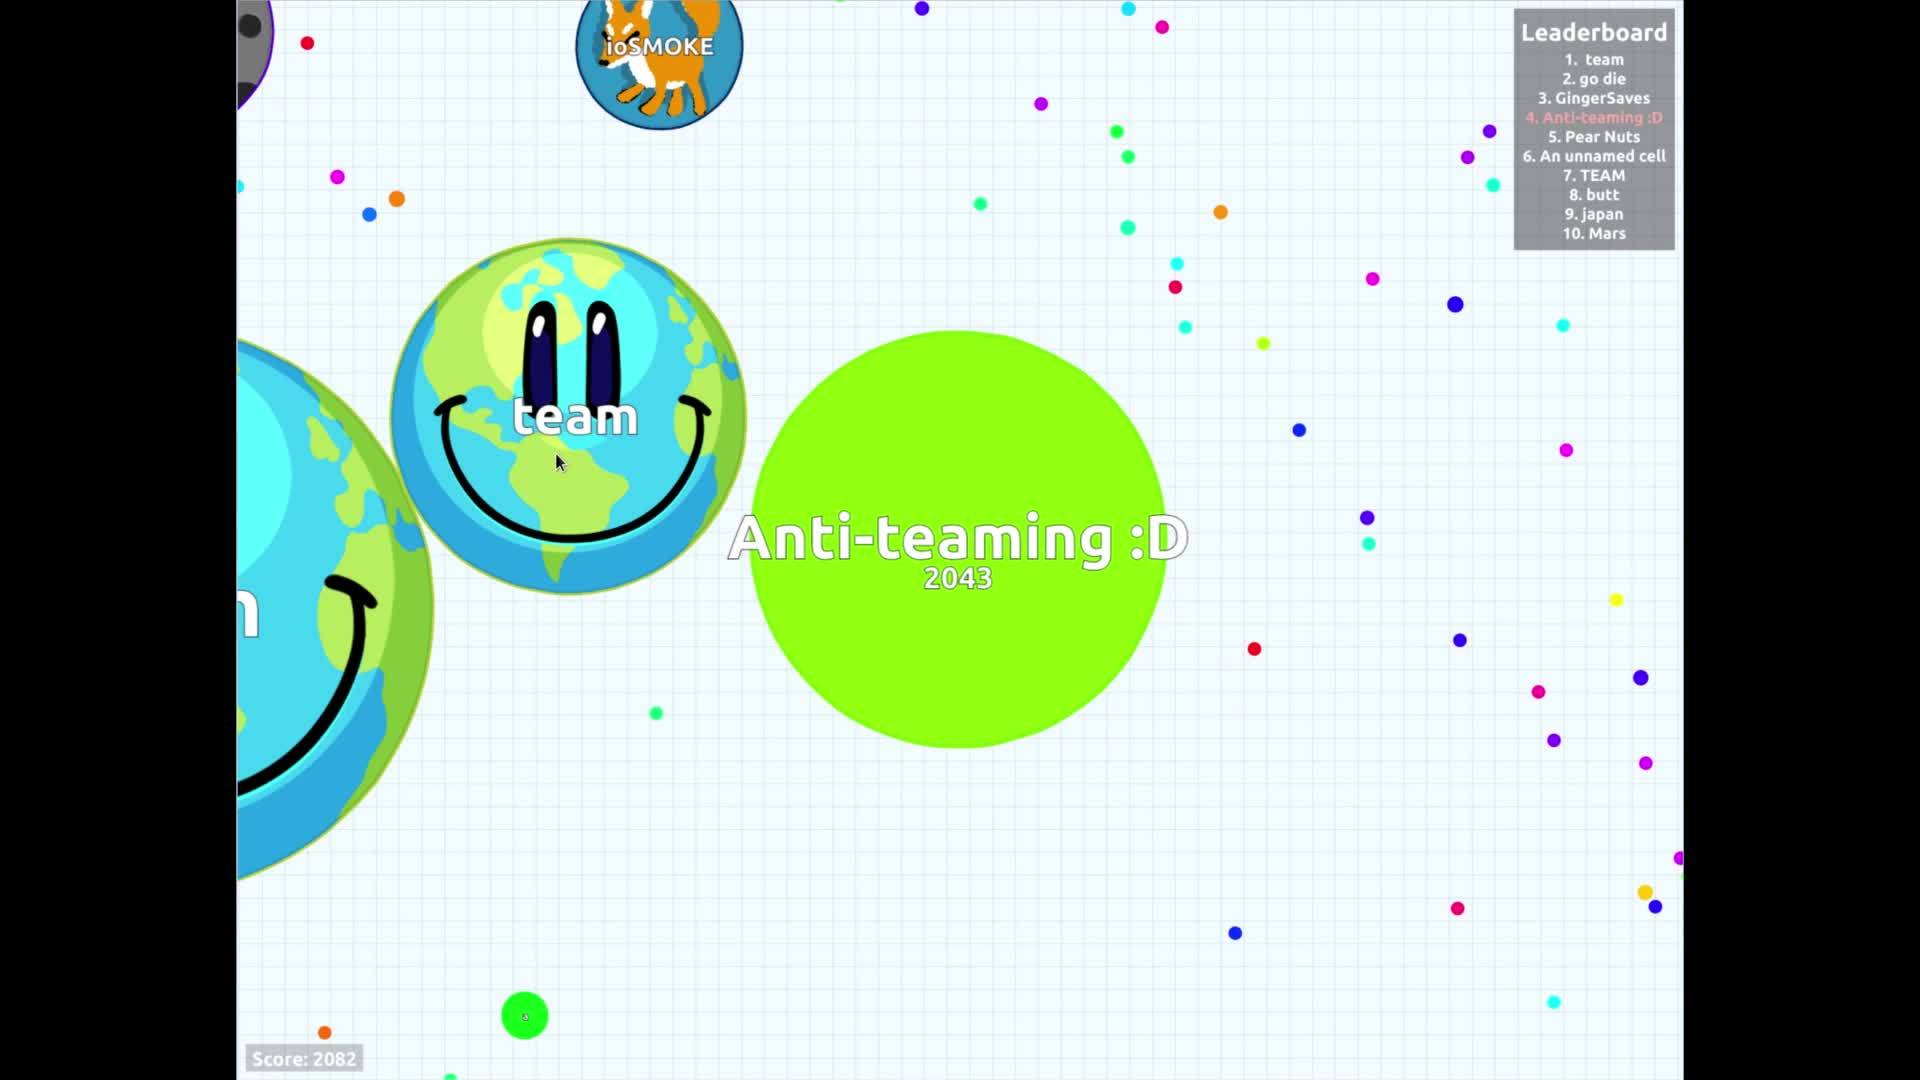 agario, Anti-teaming :D GIFs